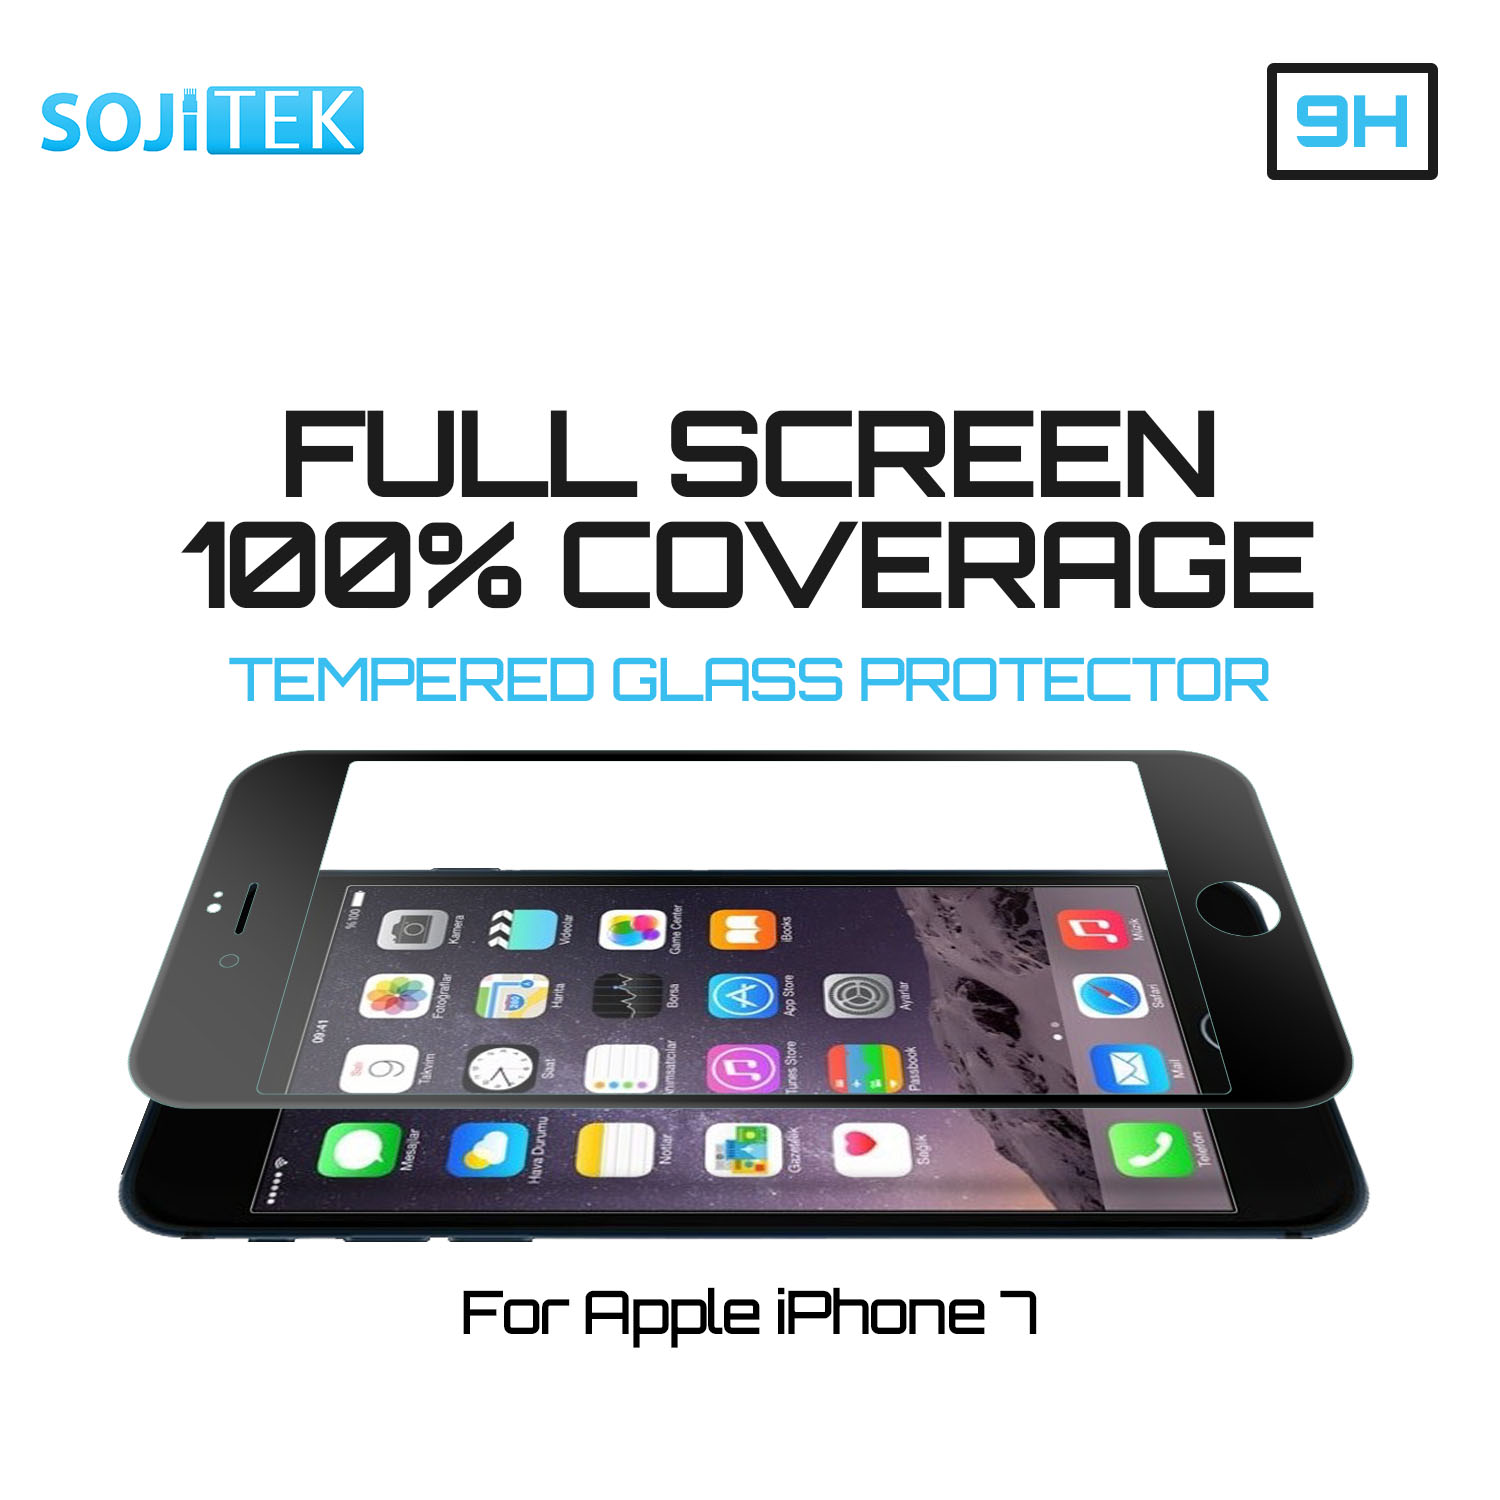 SkylerShield iPhone 7 100% 3D Full Screen Coverage Black Color Premium Ballistic Tempered Glass Screen Protector with Lifetime Replacement Warranty - (HD) Ultra Clear 99.99% Clarity